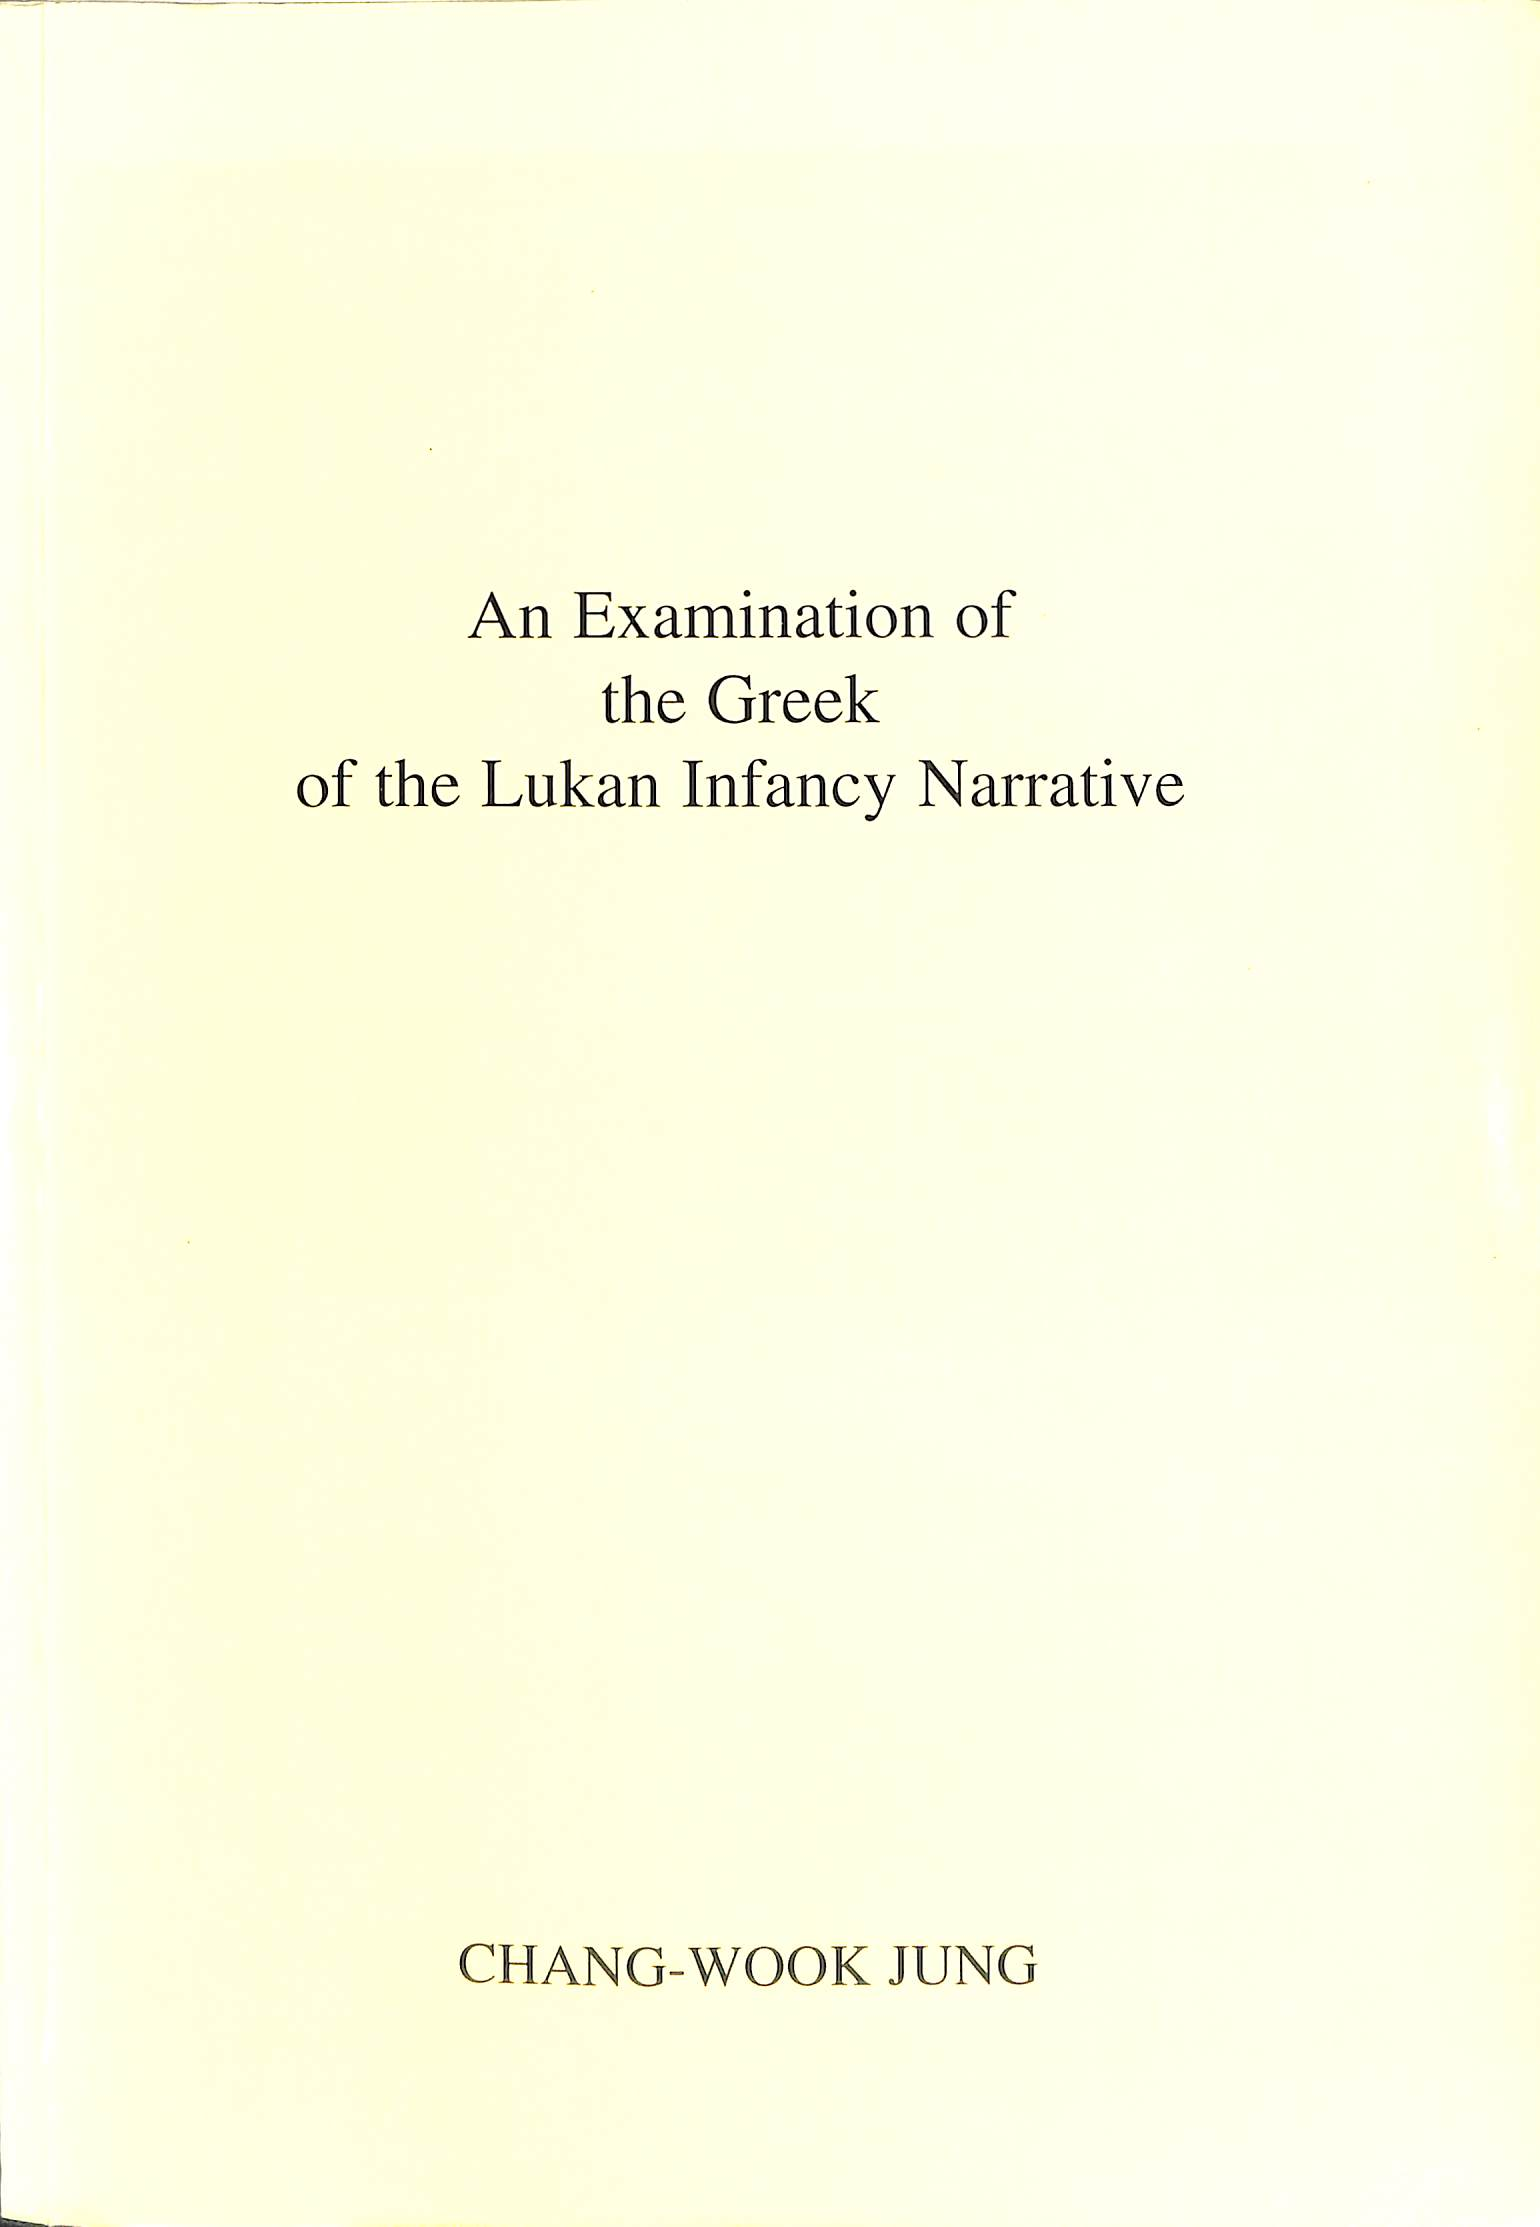 Jung, Chang-Wook - An Examination of the Greek of the Lukan Infancy Narrative (diss.).